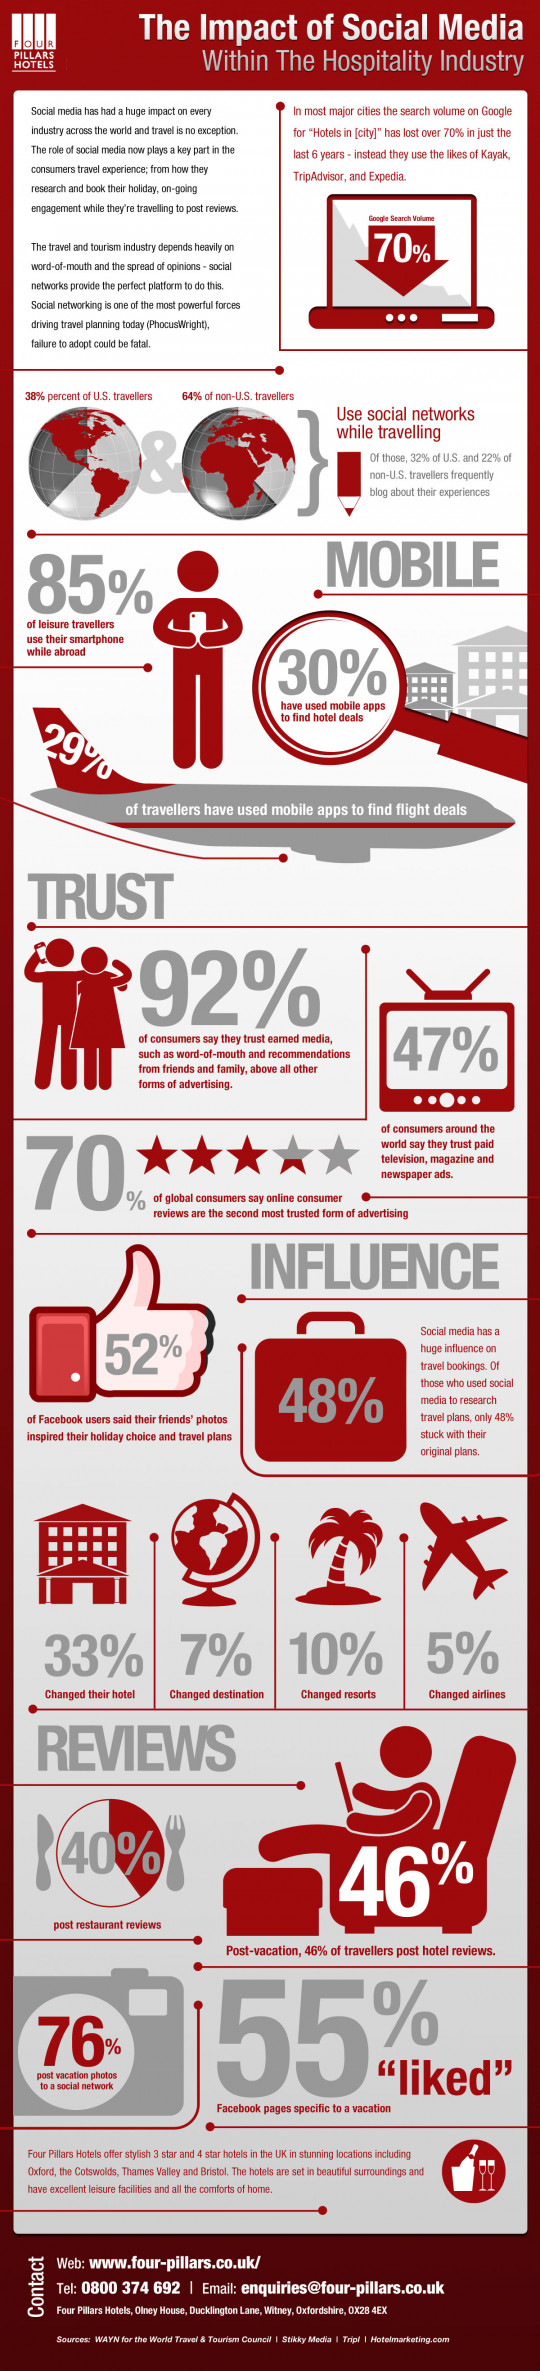 The impact of Social Media within the Hospitality Industry Social Media